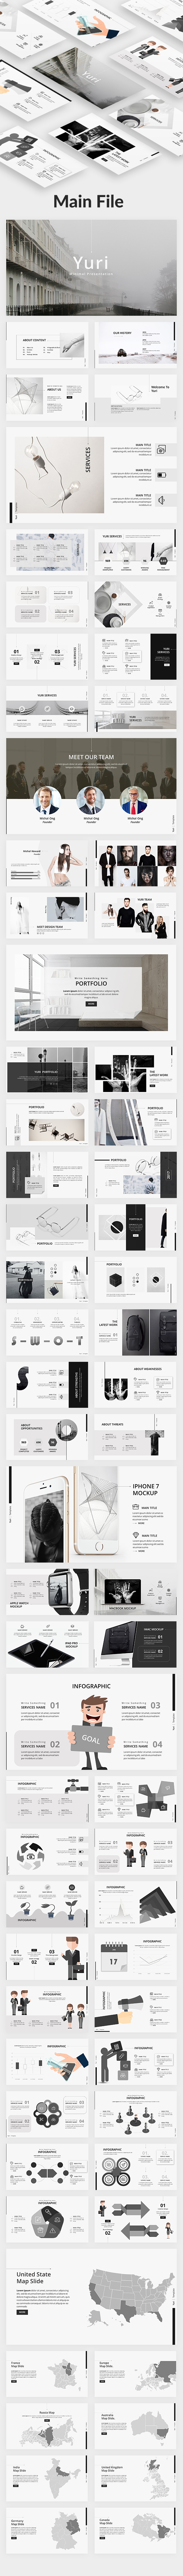 Yuri Creative Google Slide Template - Google Slides Presentation Templates